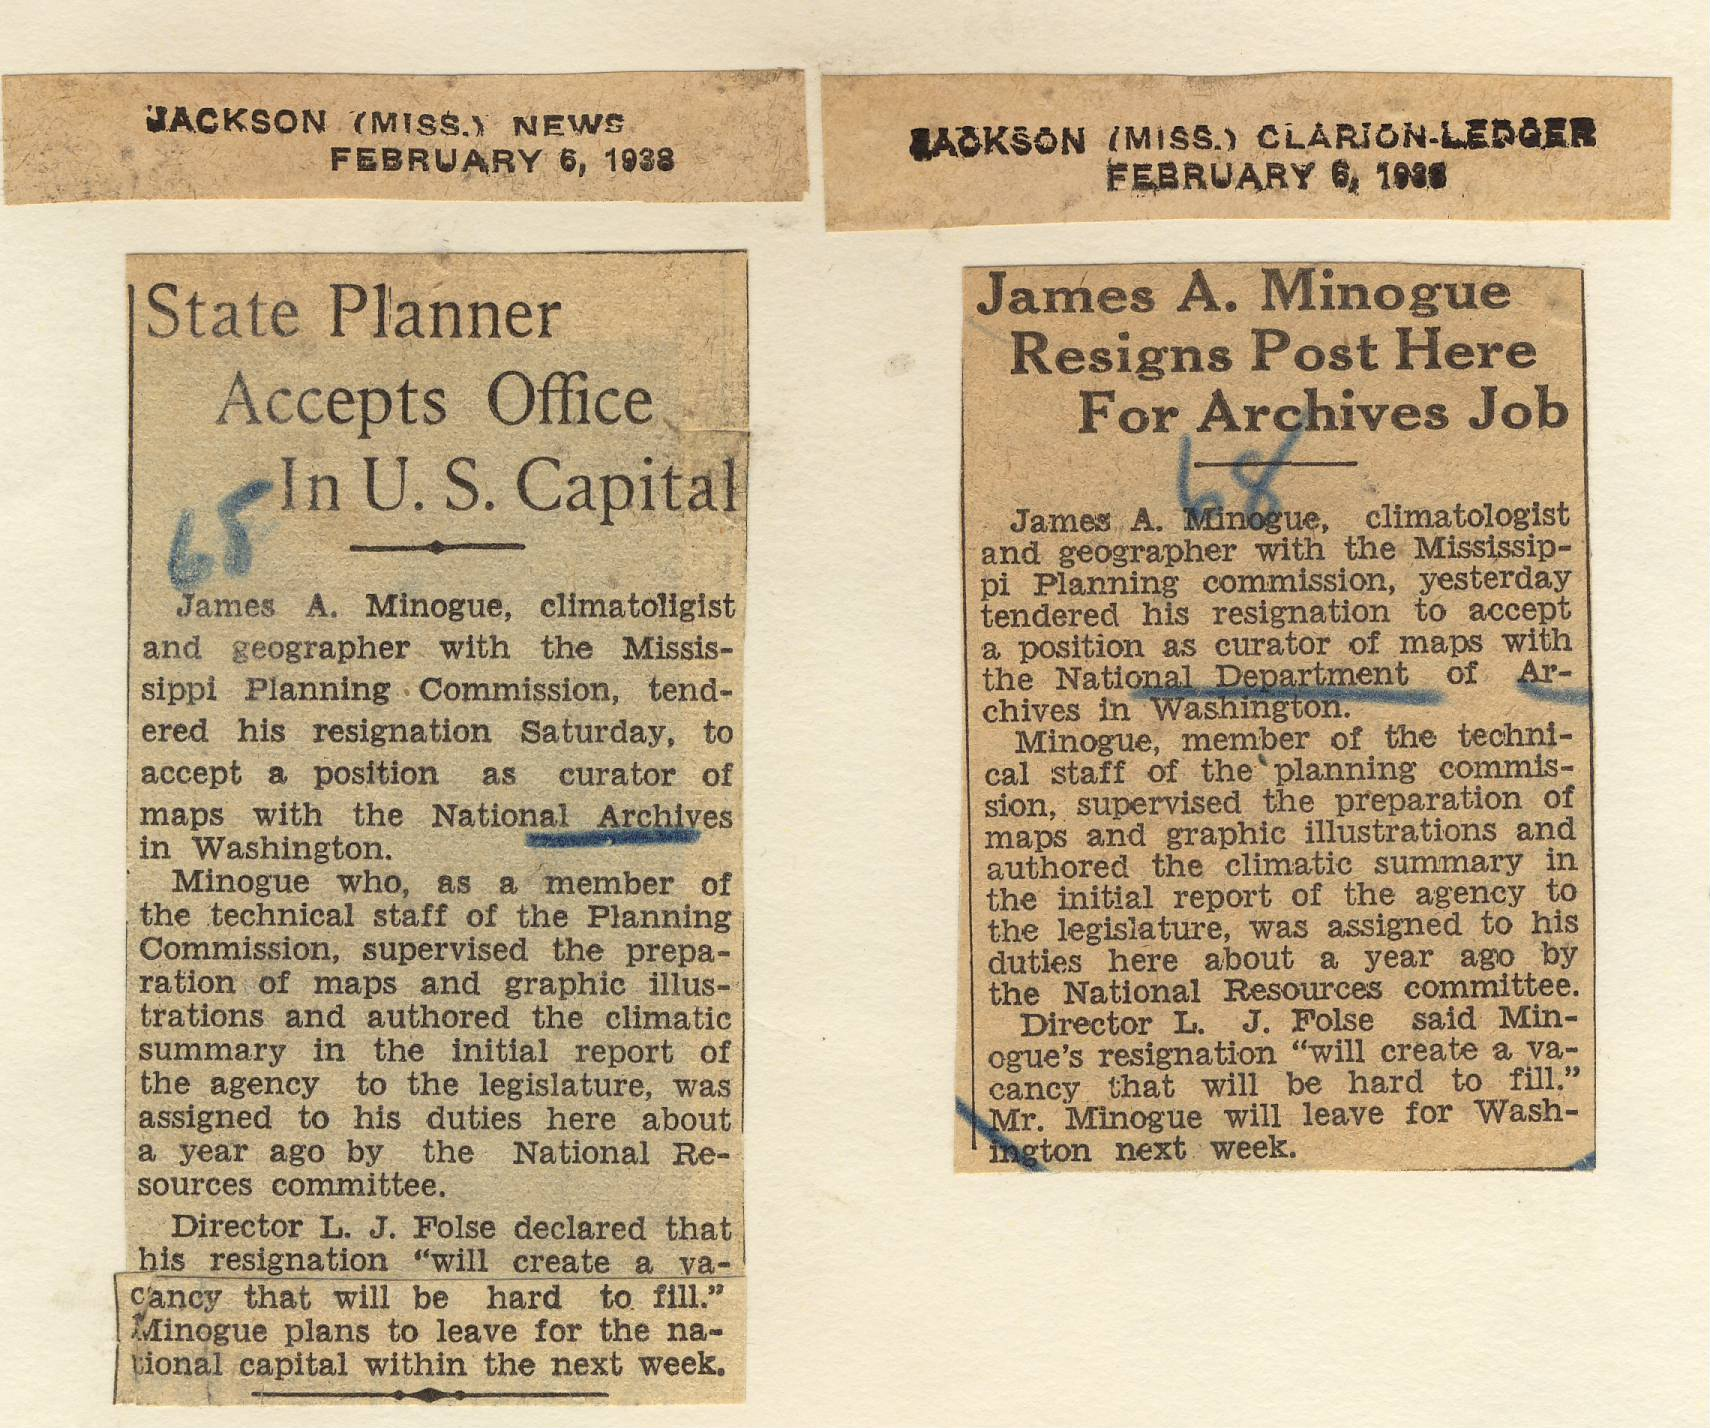 RG 64, P 67, file 1938 - Appointment of James A. Minogue to Carto, Feb.